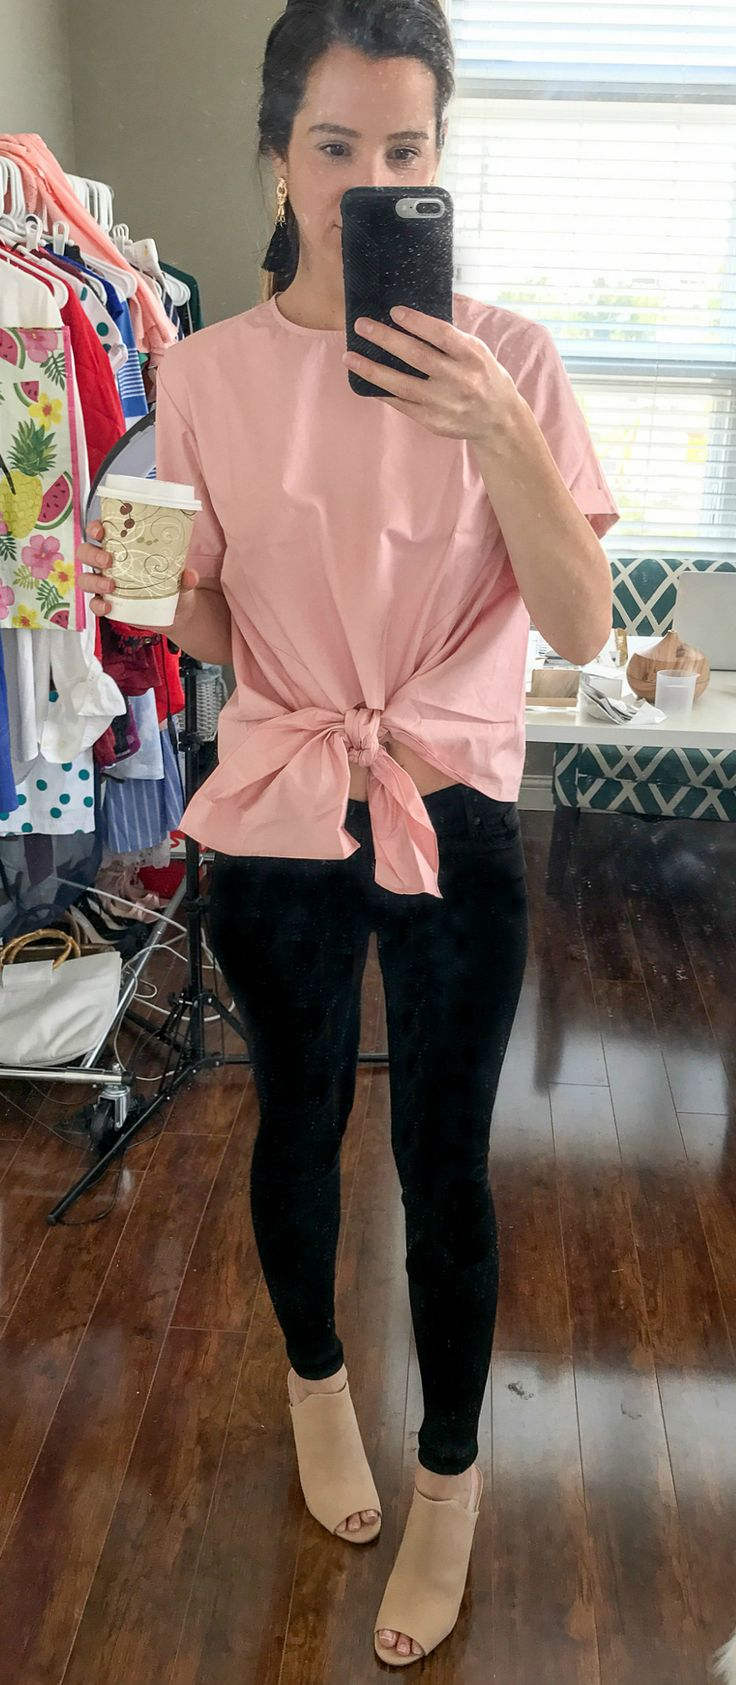 Pink BP. tie front blouse with black Hudson super skinny jeans | Nordstrom Anniversary Sale 2017 Hits and Misses by southern blogger Diary of a Debutante